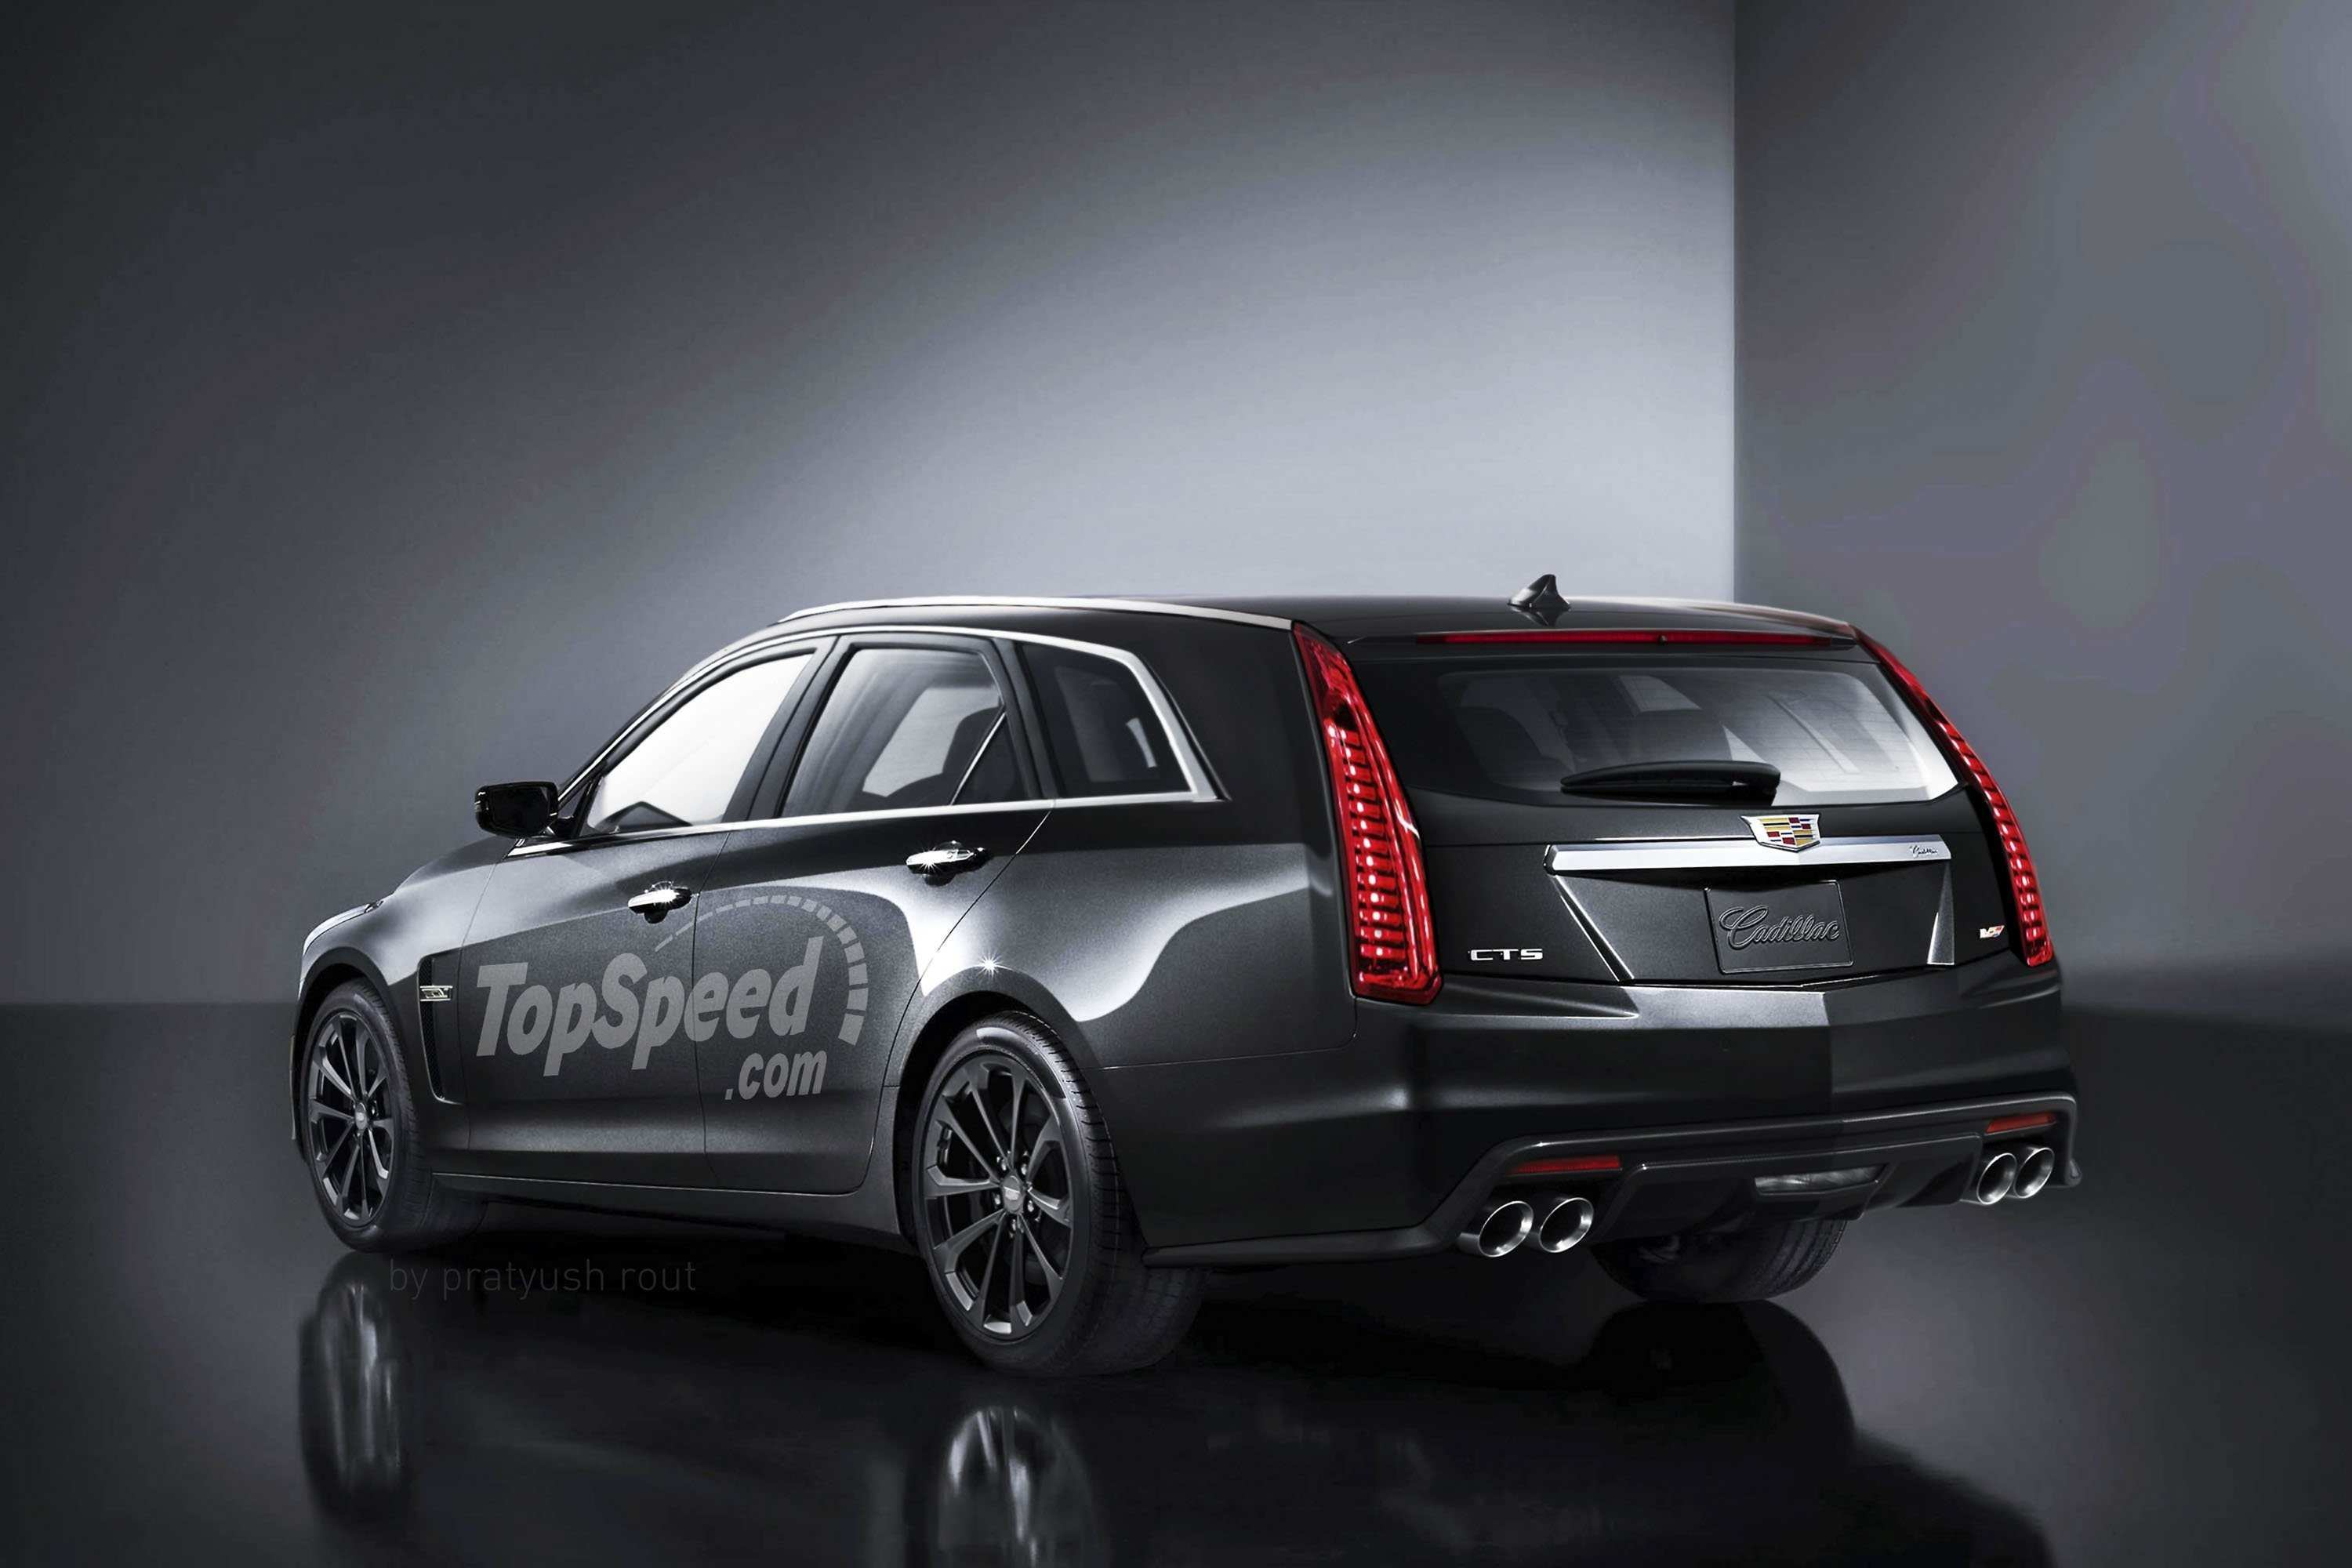 74 All New Cadillac 2019 Ats Coupe Redesign Price And Review Engine with Cadillac 2019 Ats Coupe Redesign Price And Review